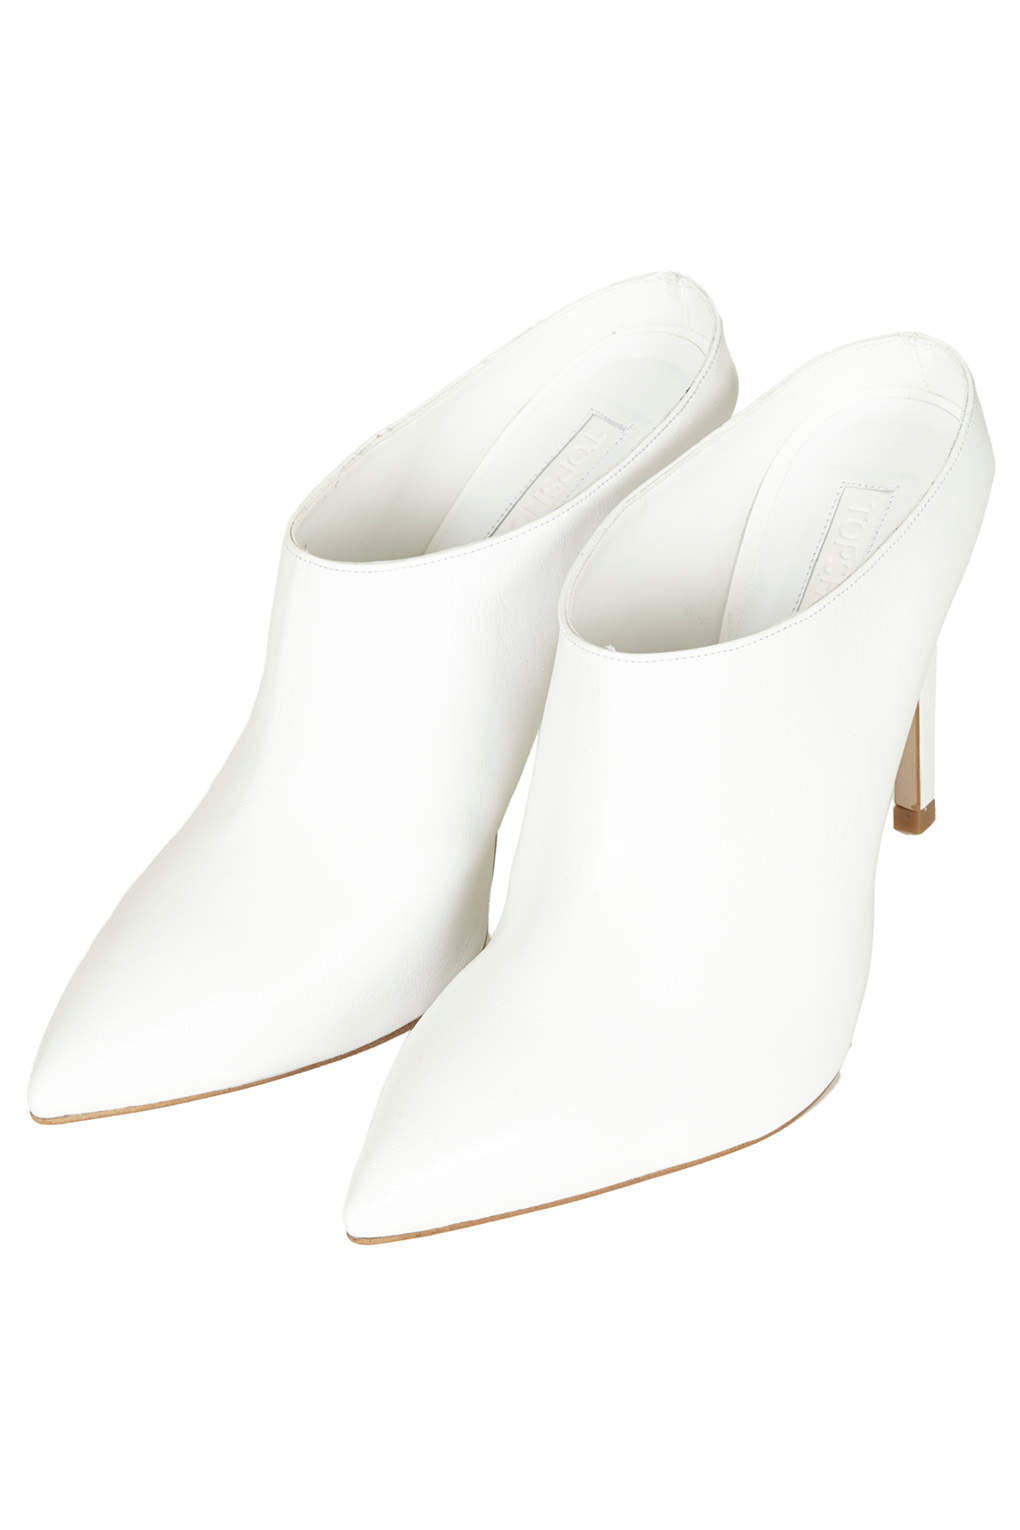 Topshop Gabi Mule Point Toe Shoes In White   Lyst